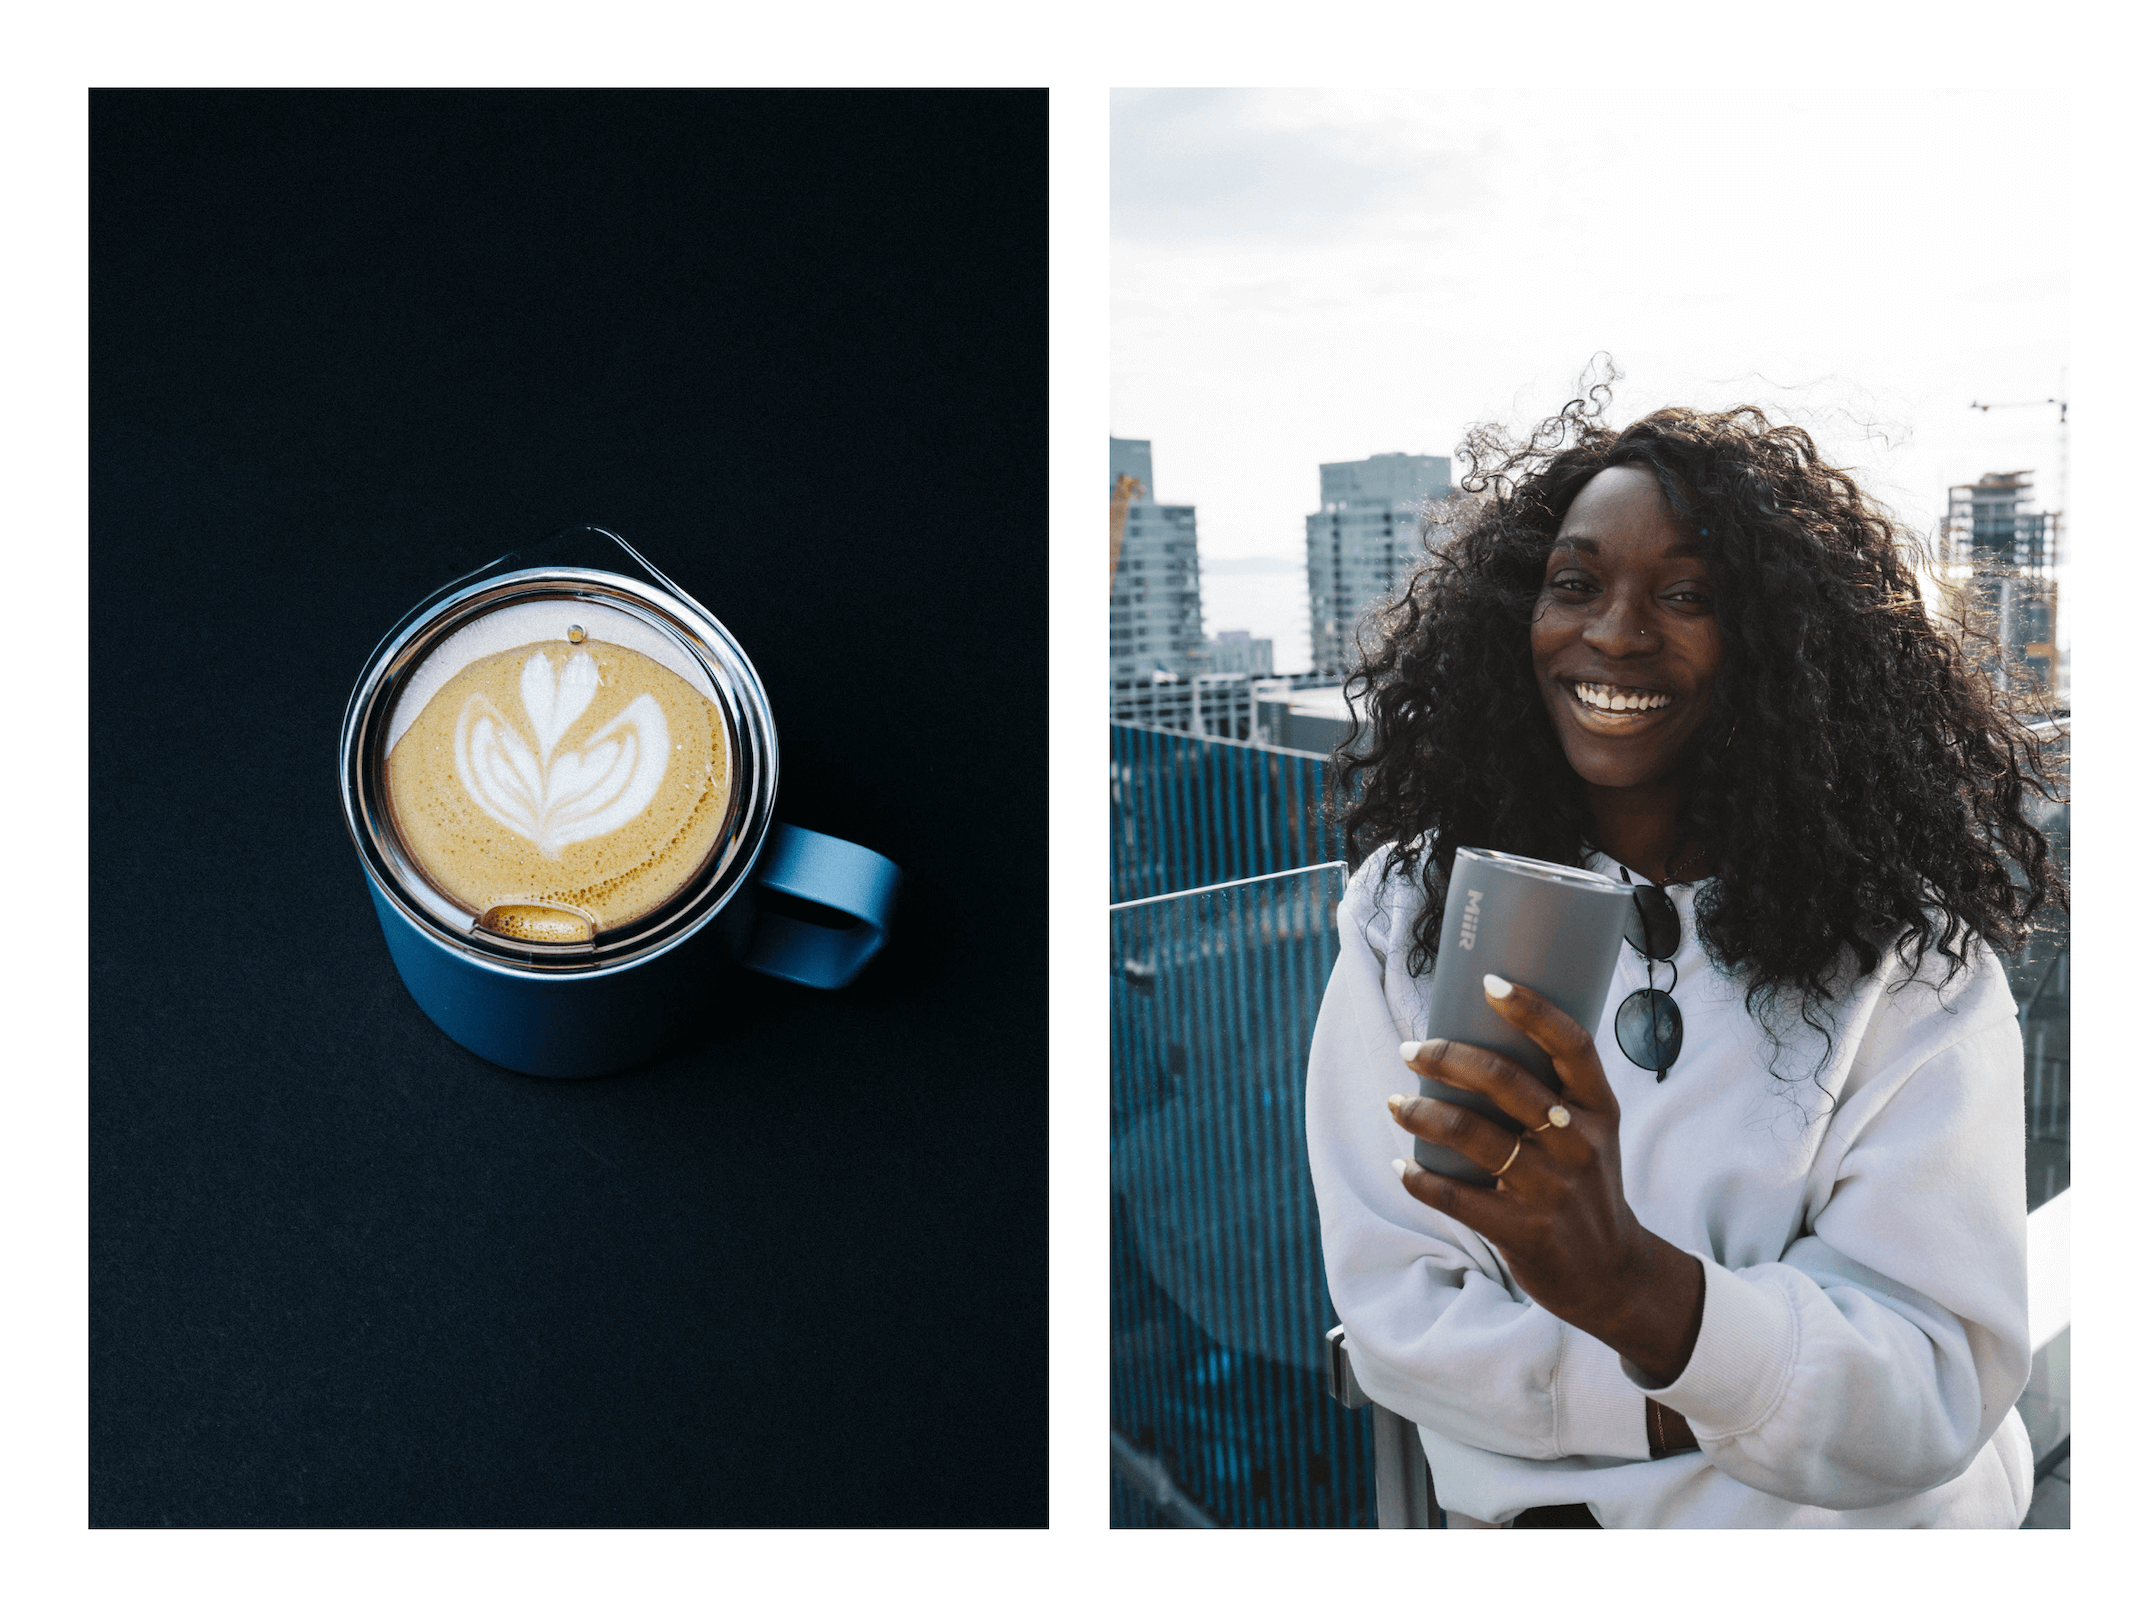 Miir and Standart Magazine - Specialty Coffee Collaboration